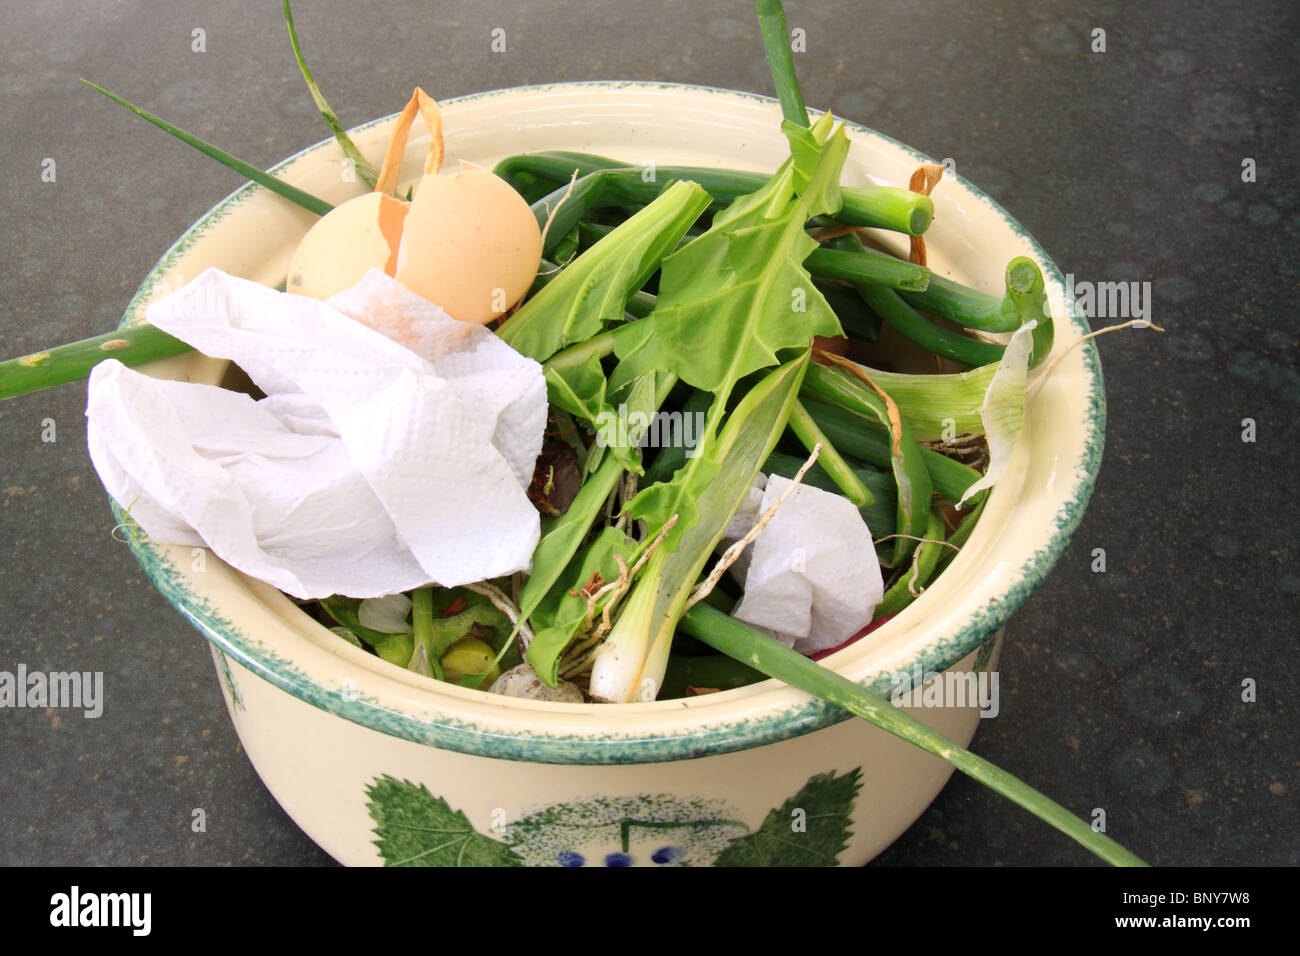 Ceramic casserole containing vegetable trimmings, egg shell and paper and destined for the compost heap. - Stock Image